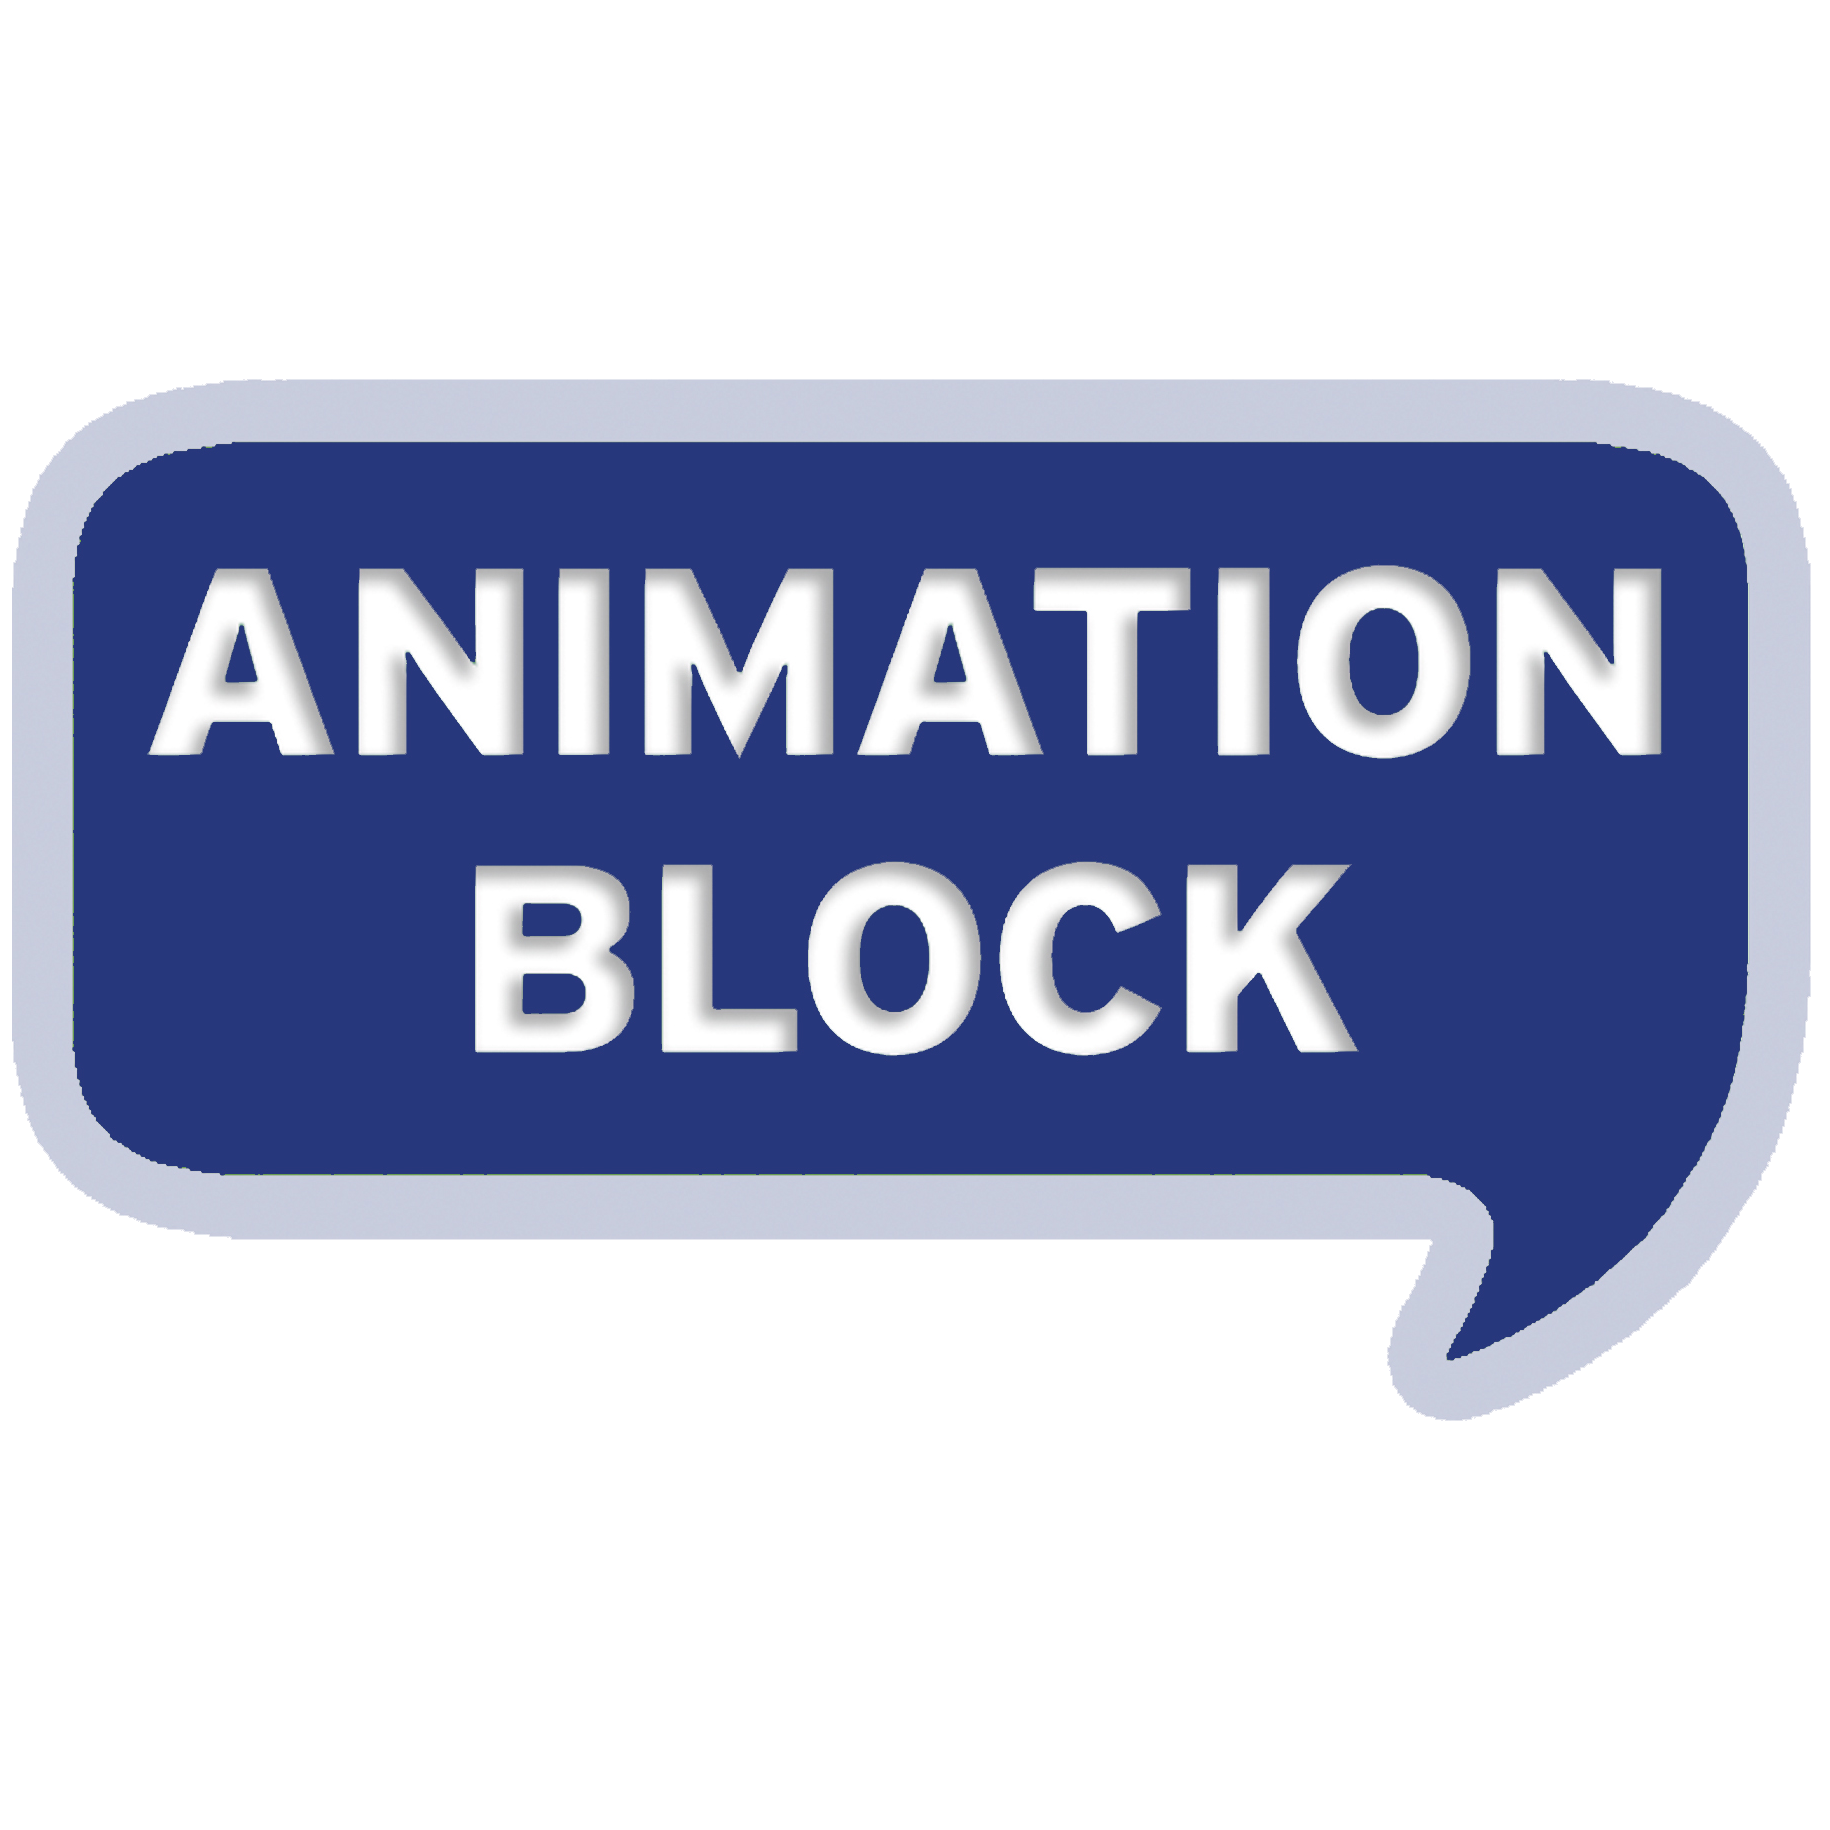 Animation Block